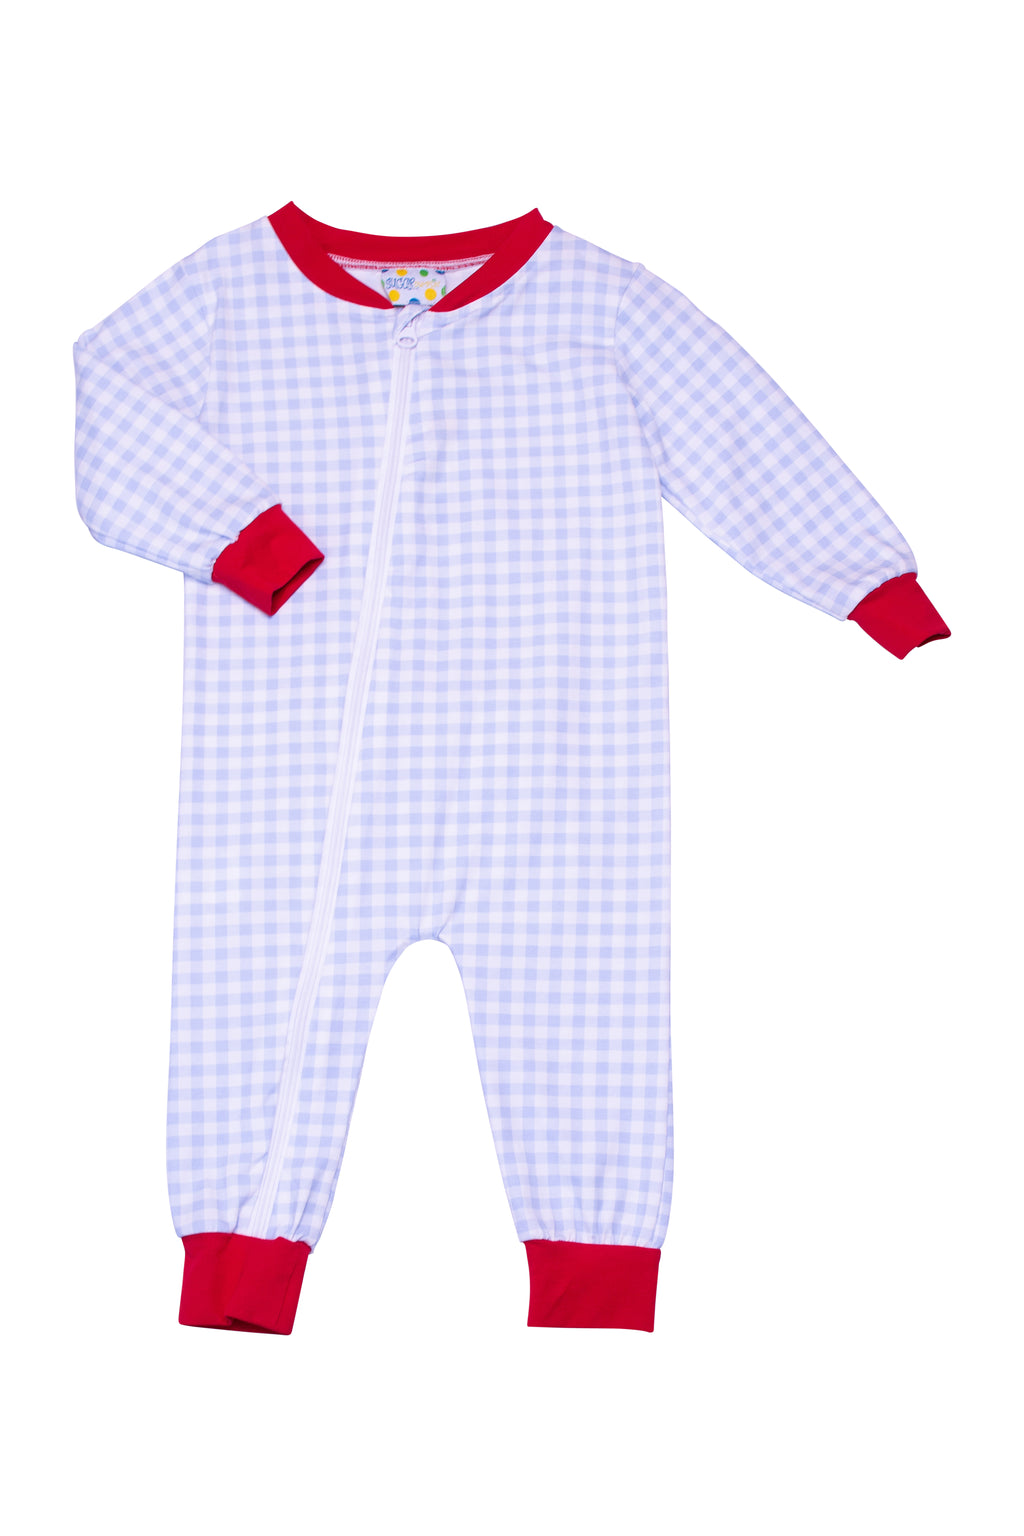 Boys Knit Blue Check/Red Flap PJ